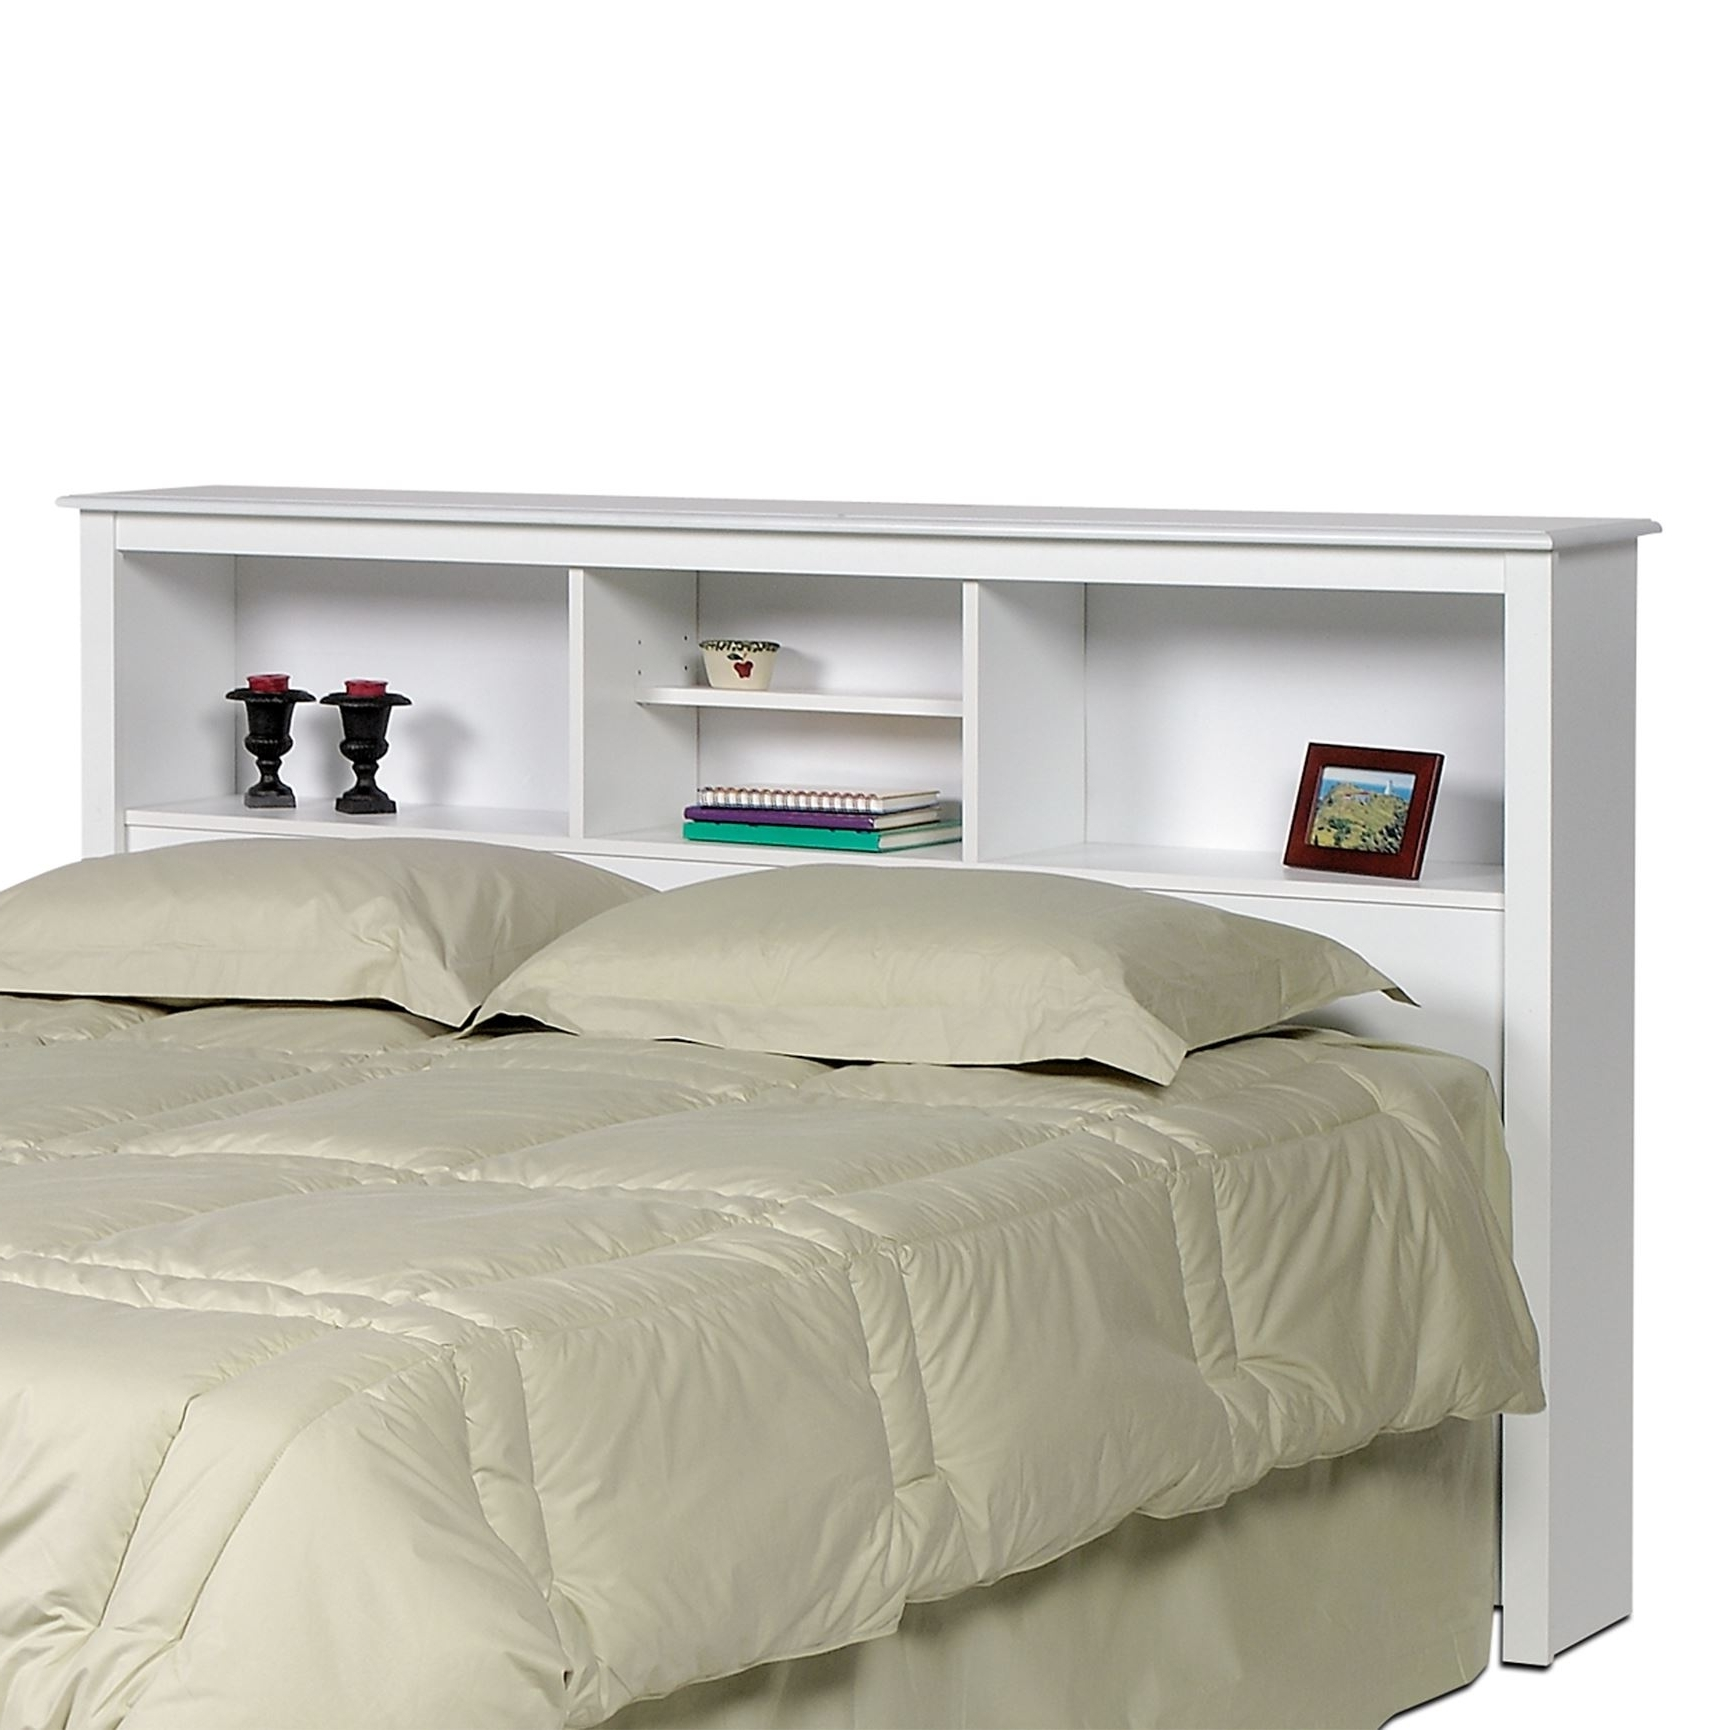 Trendy Queen Bookcases Headboard Pertaining To Monterey White Double / Queen Bookcase Headboard (View 8 of 15)